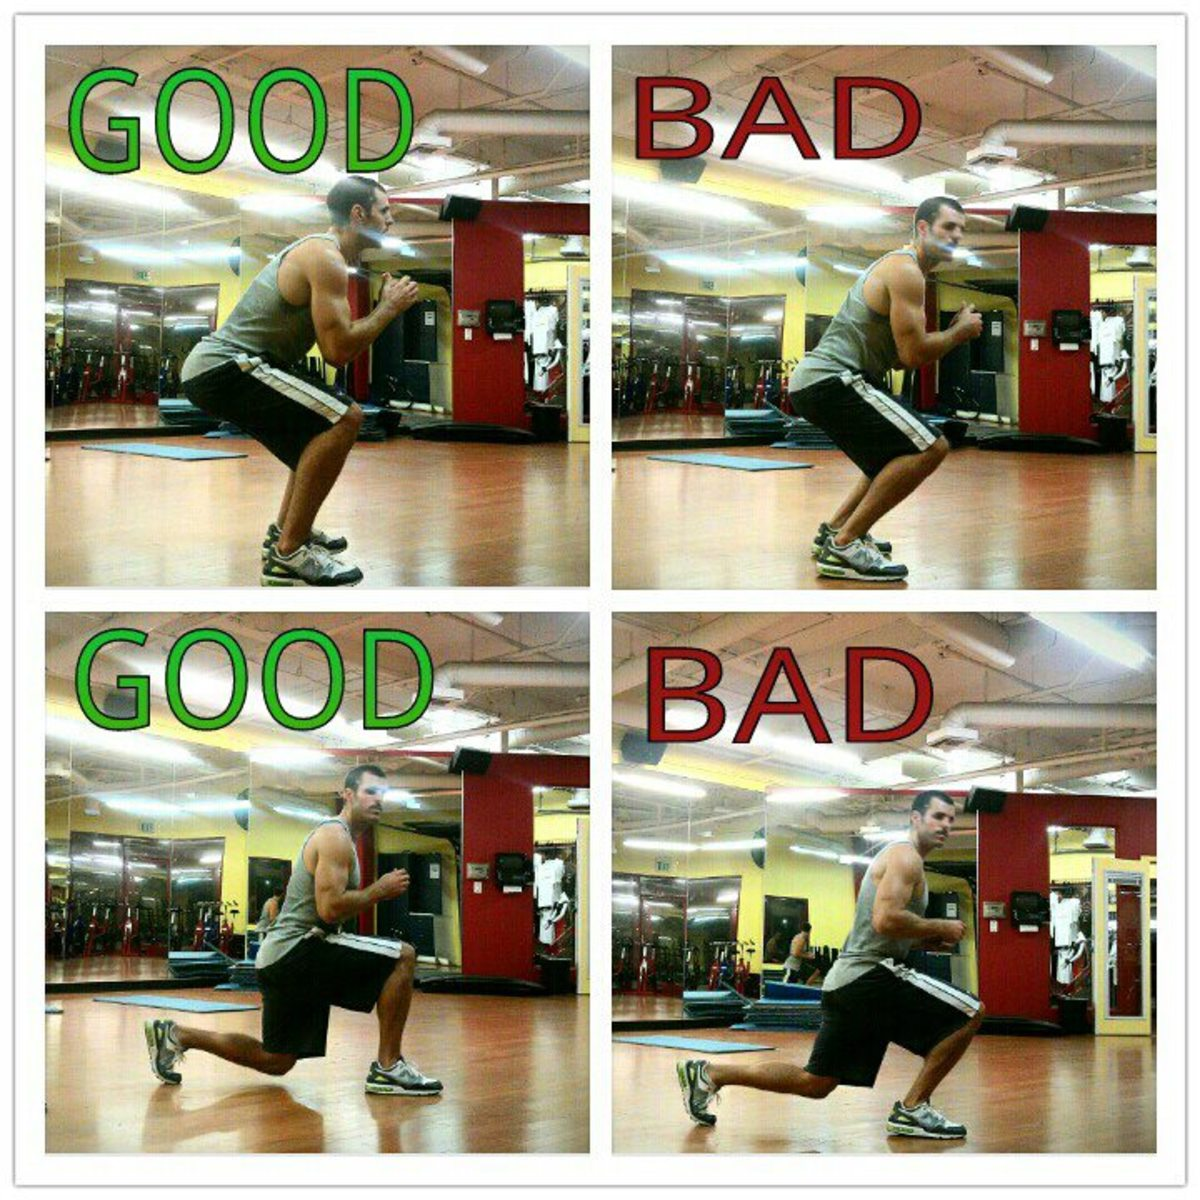 Good & Bad Squat Form Demonstration Poster by Brad Wark - ck out where the knee is in relation to the toes